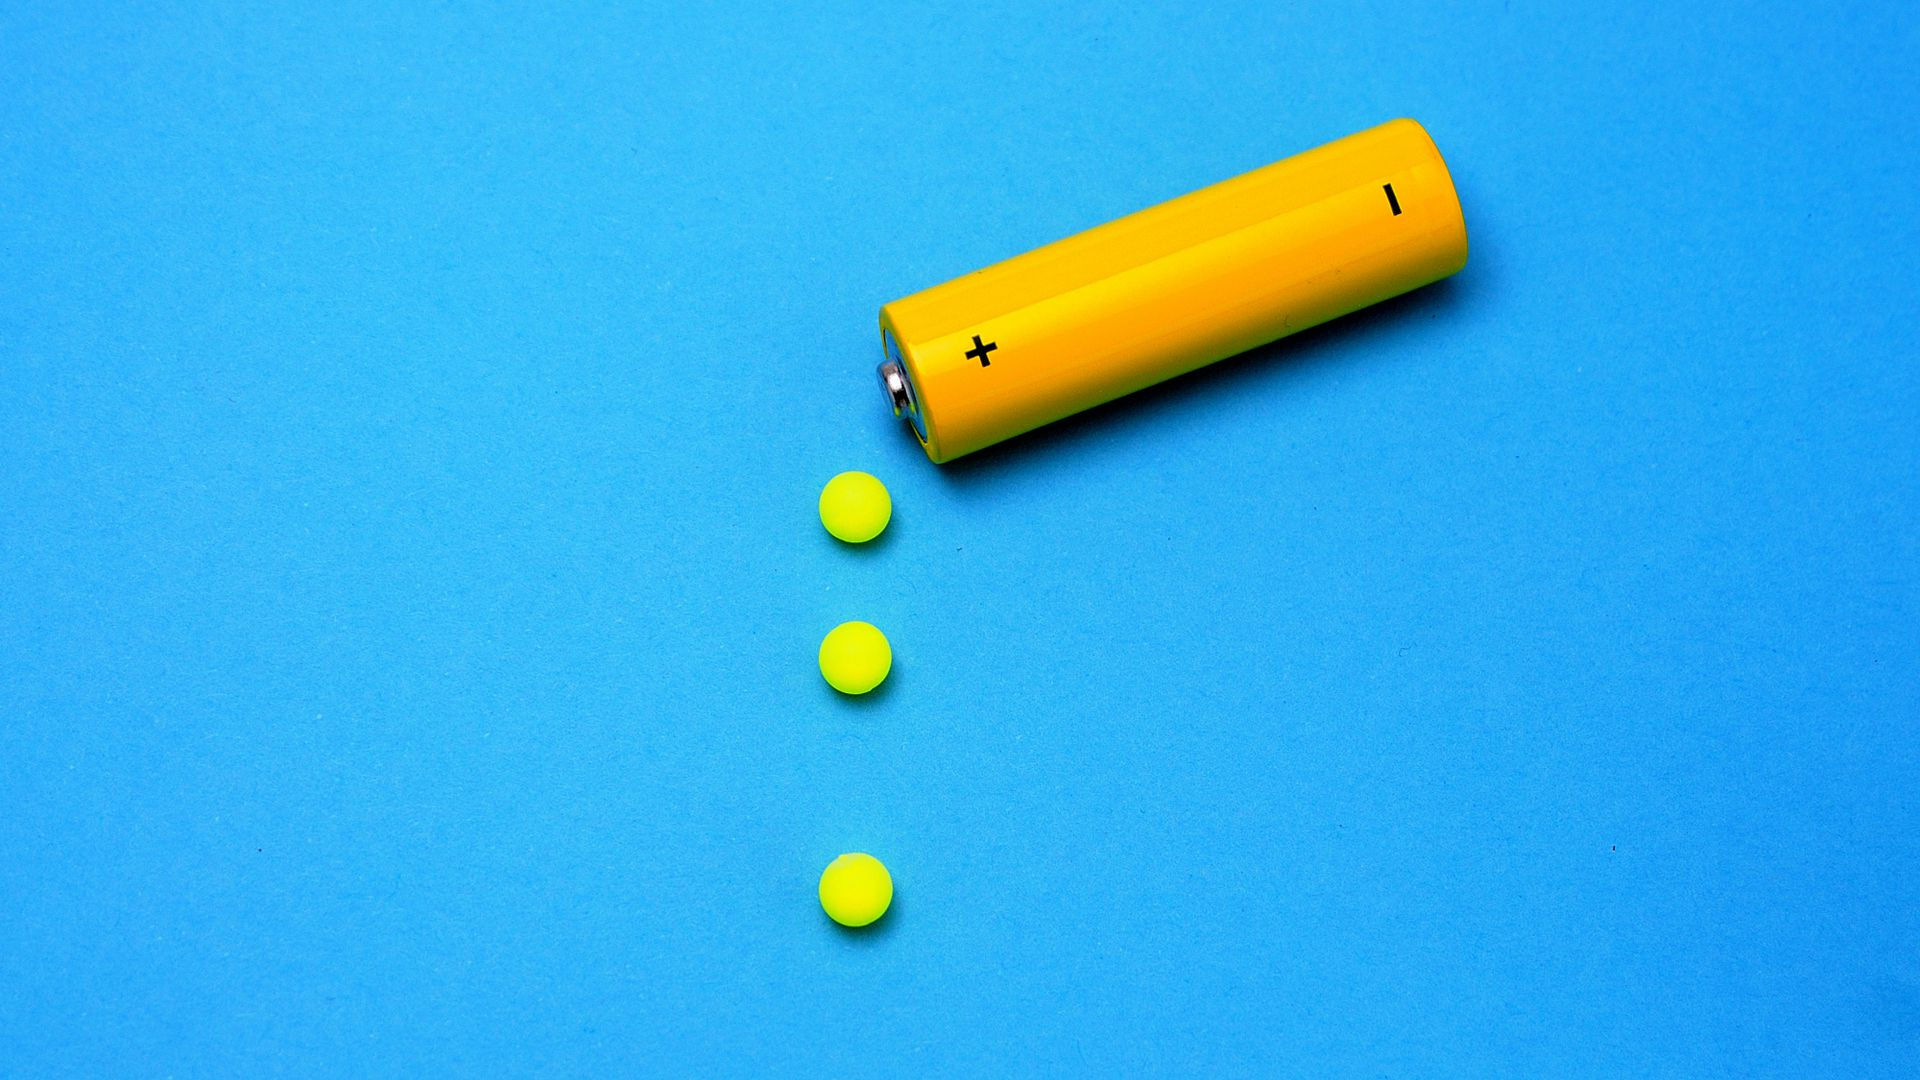 In this image, a yellow battery drips yellow circles on top of a blue background.